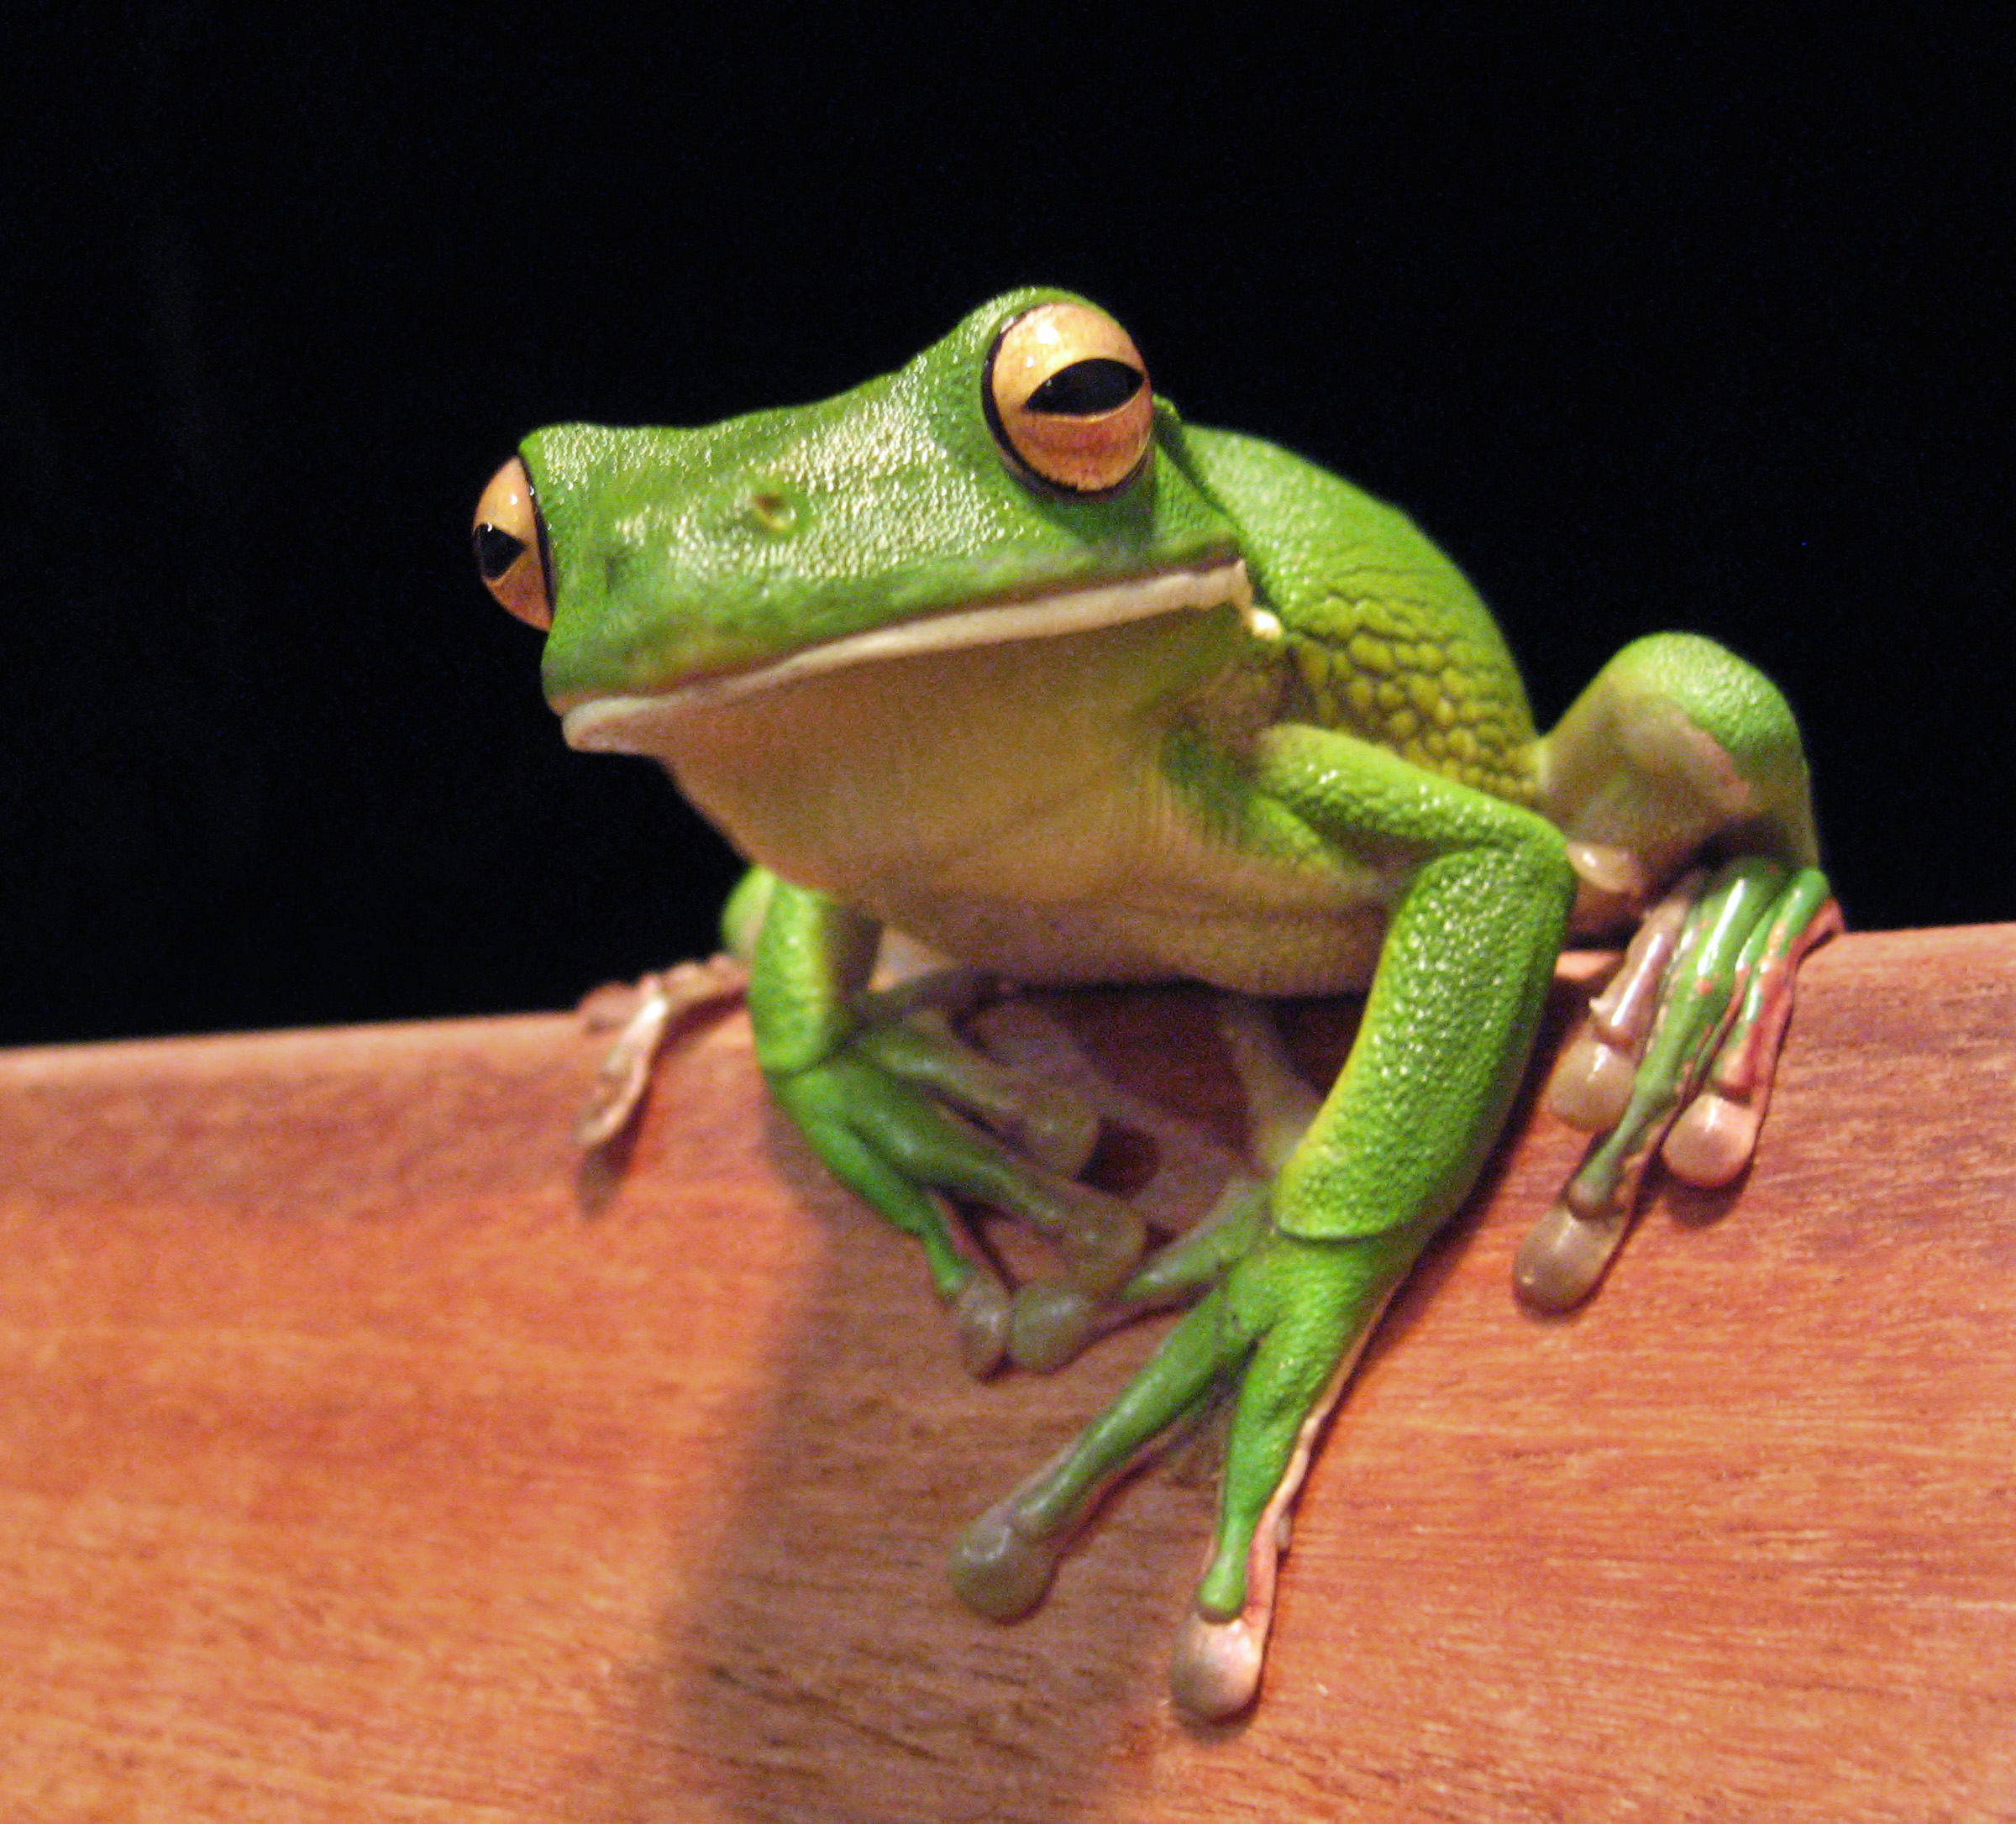 What do red eyed tree frogs look like